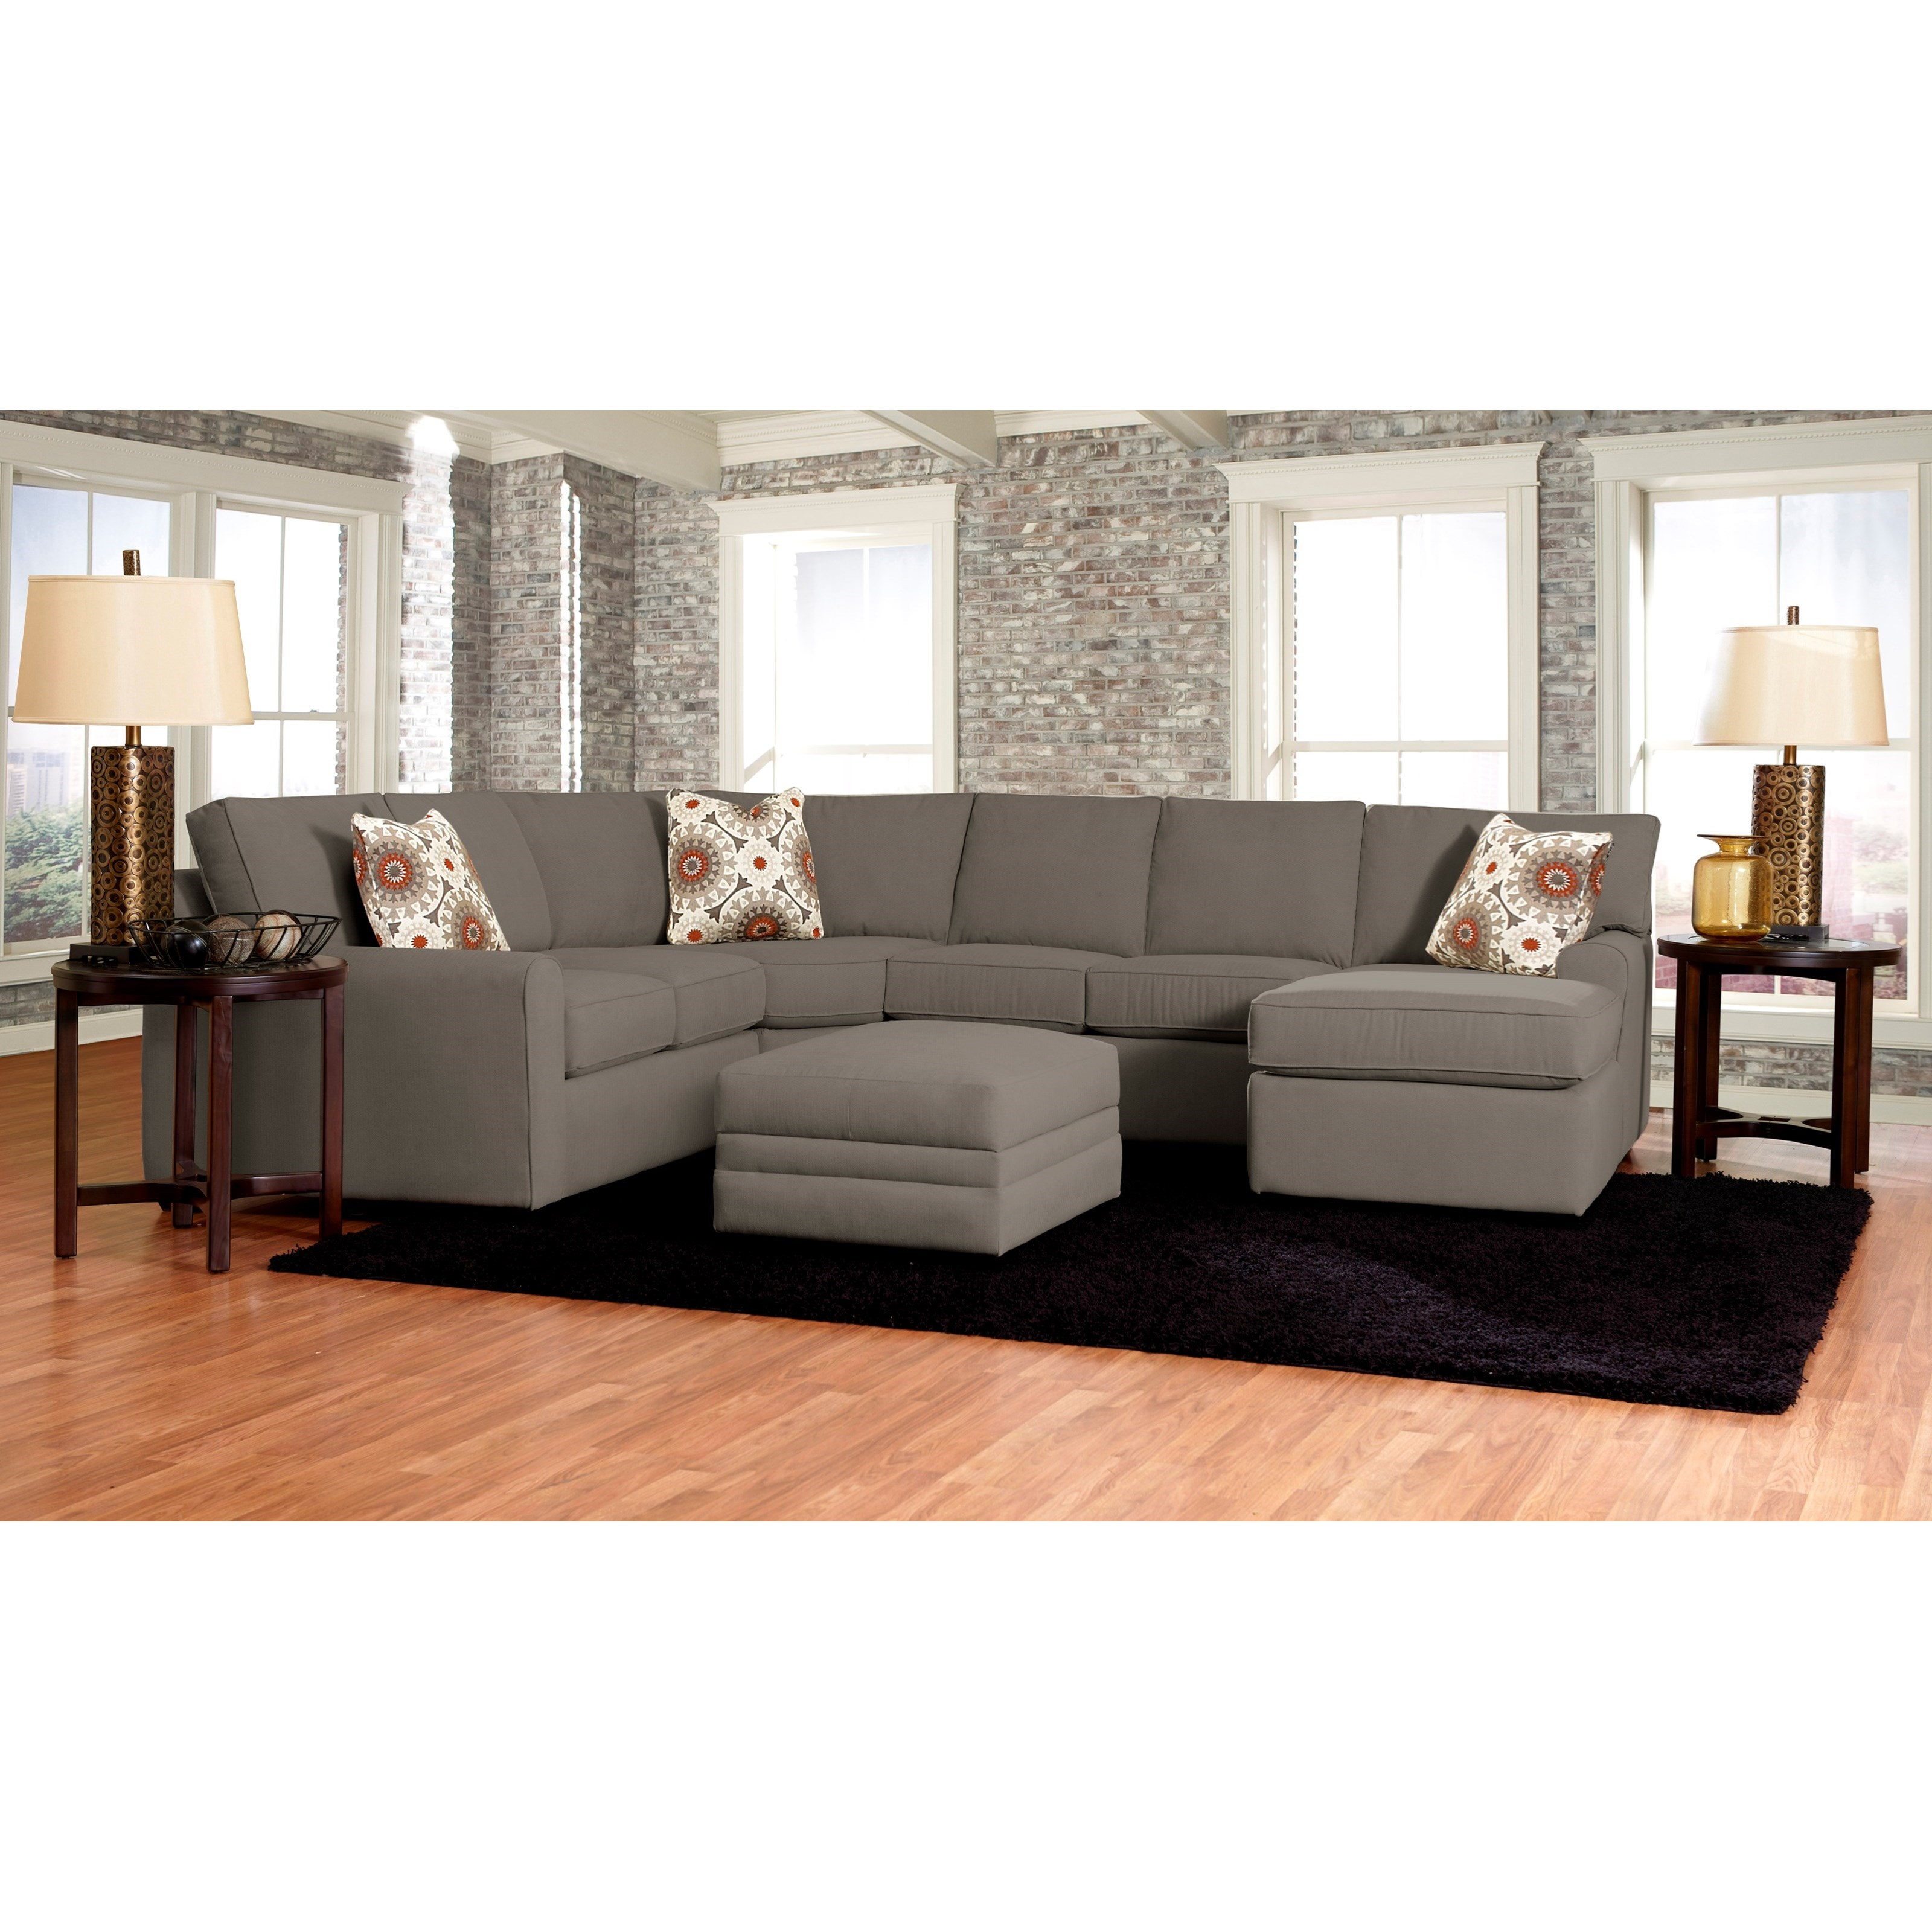 Hybrid Living Room Group by Klaussner at Northeast Factory Direct